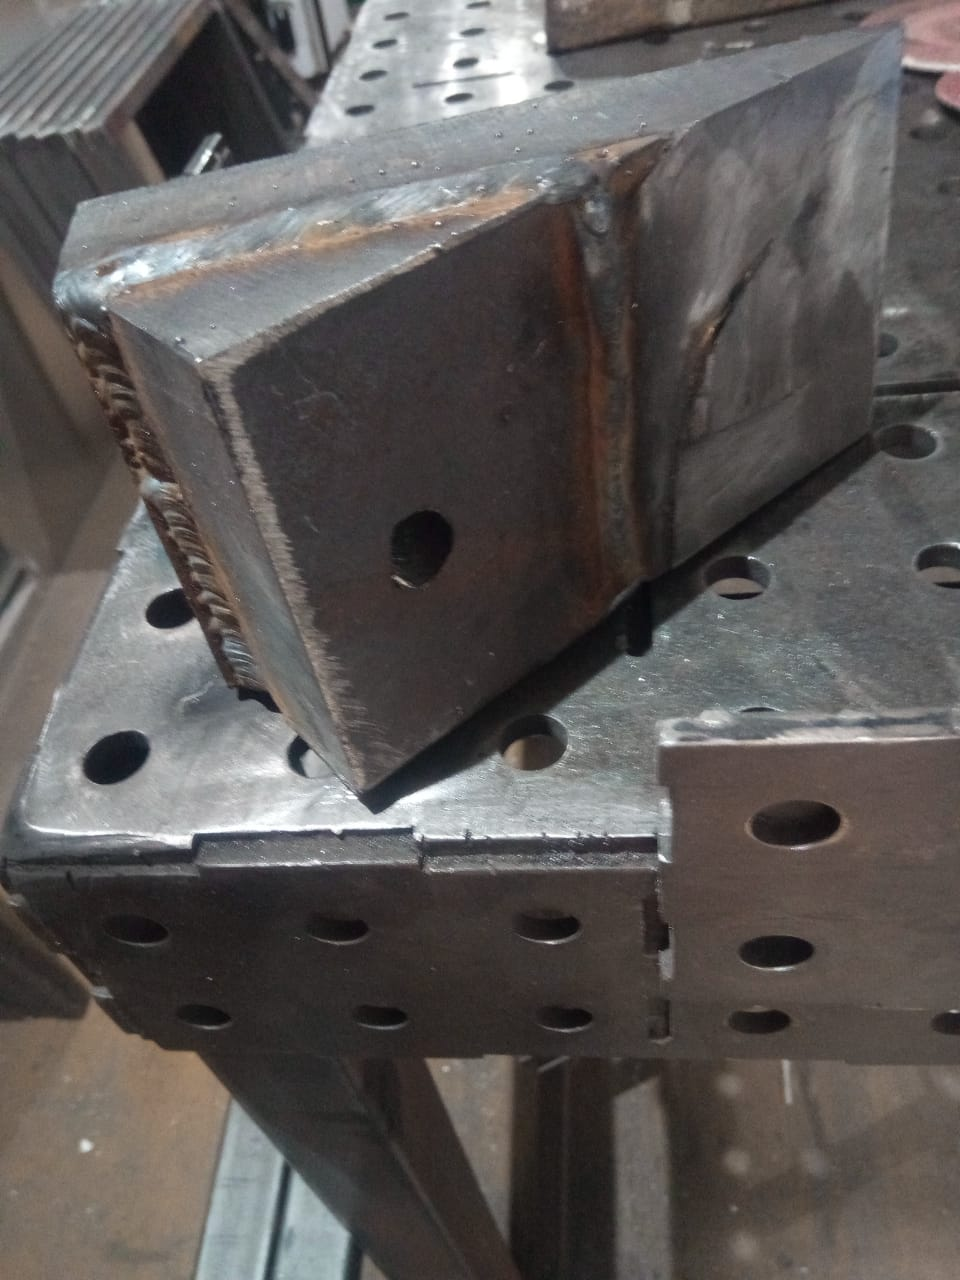 taper repair an anvil heel block